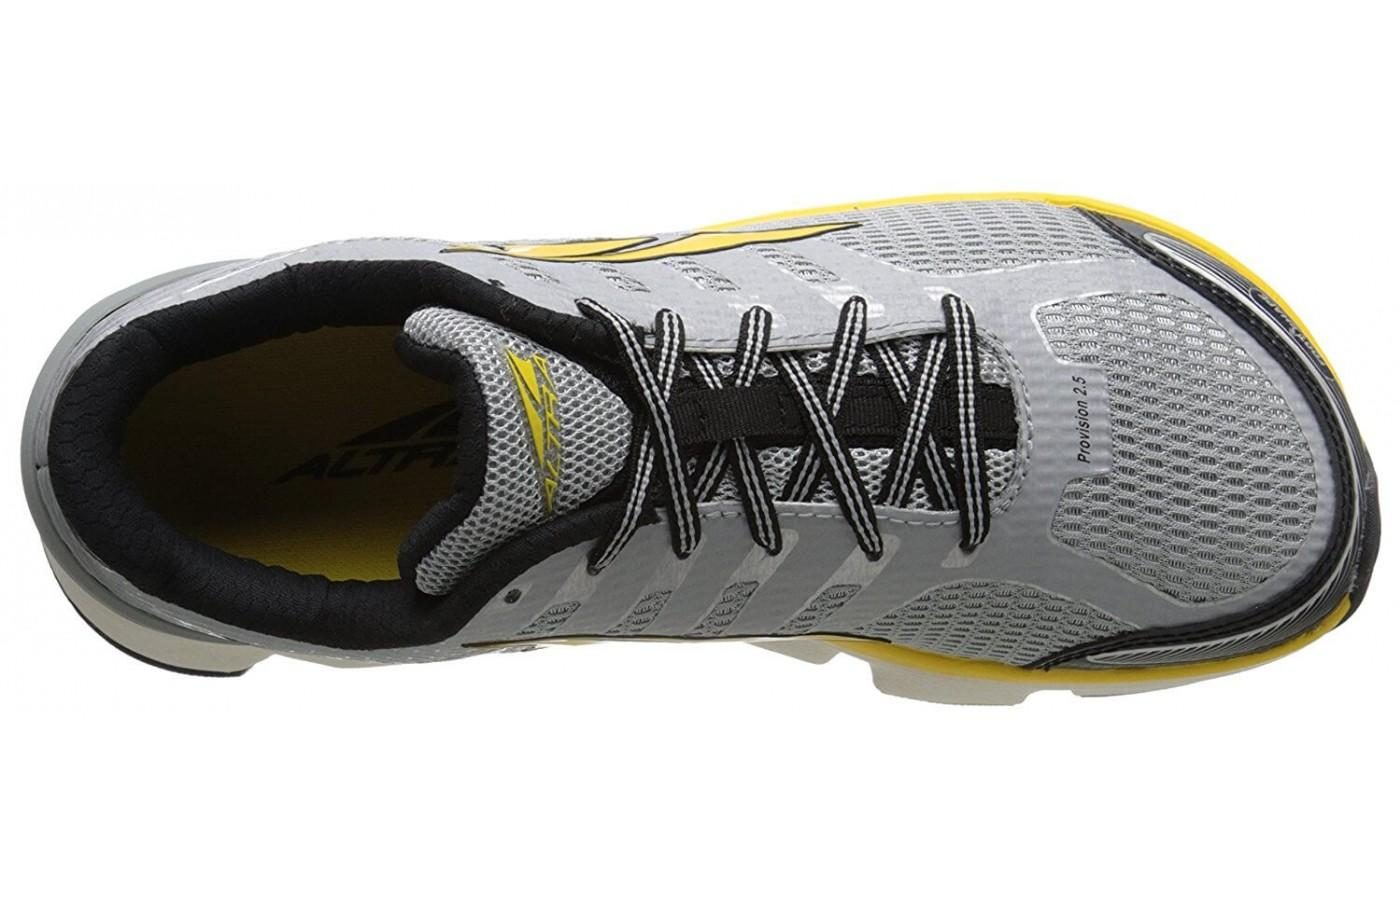 Altra Provision 2.5 has a breathable upper